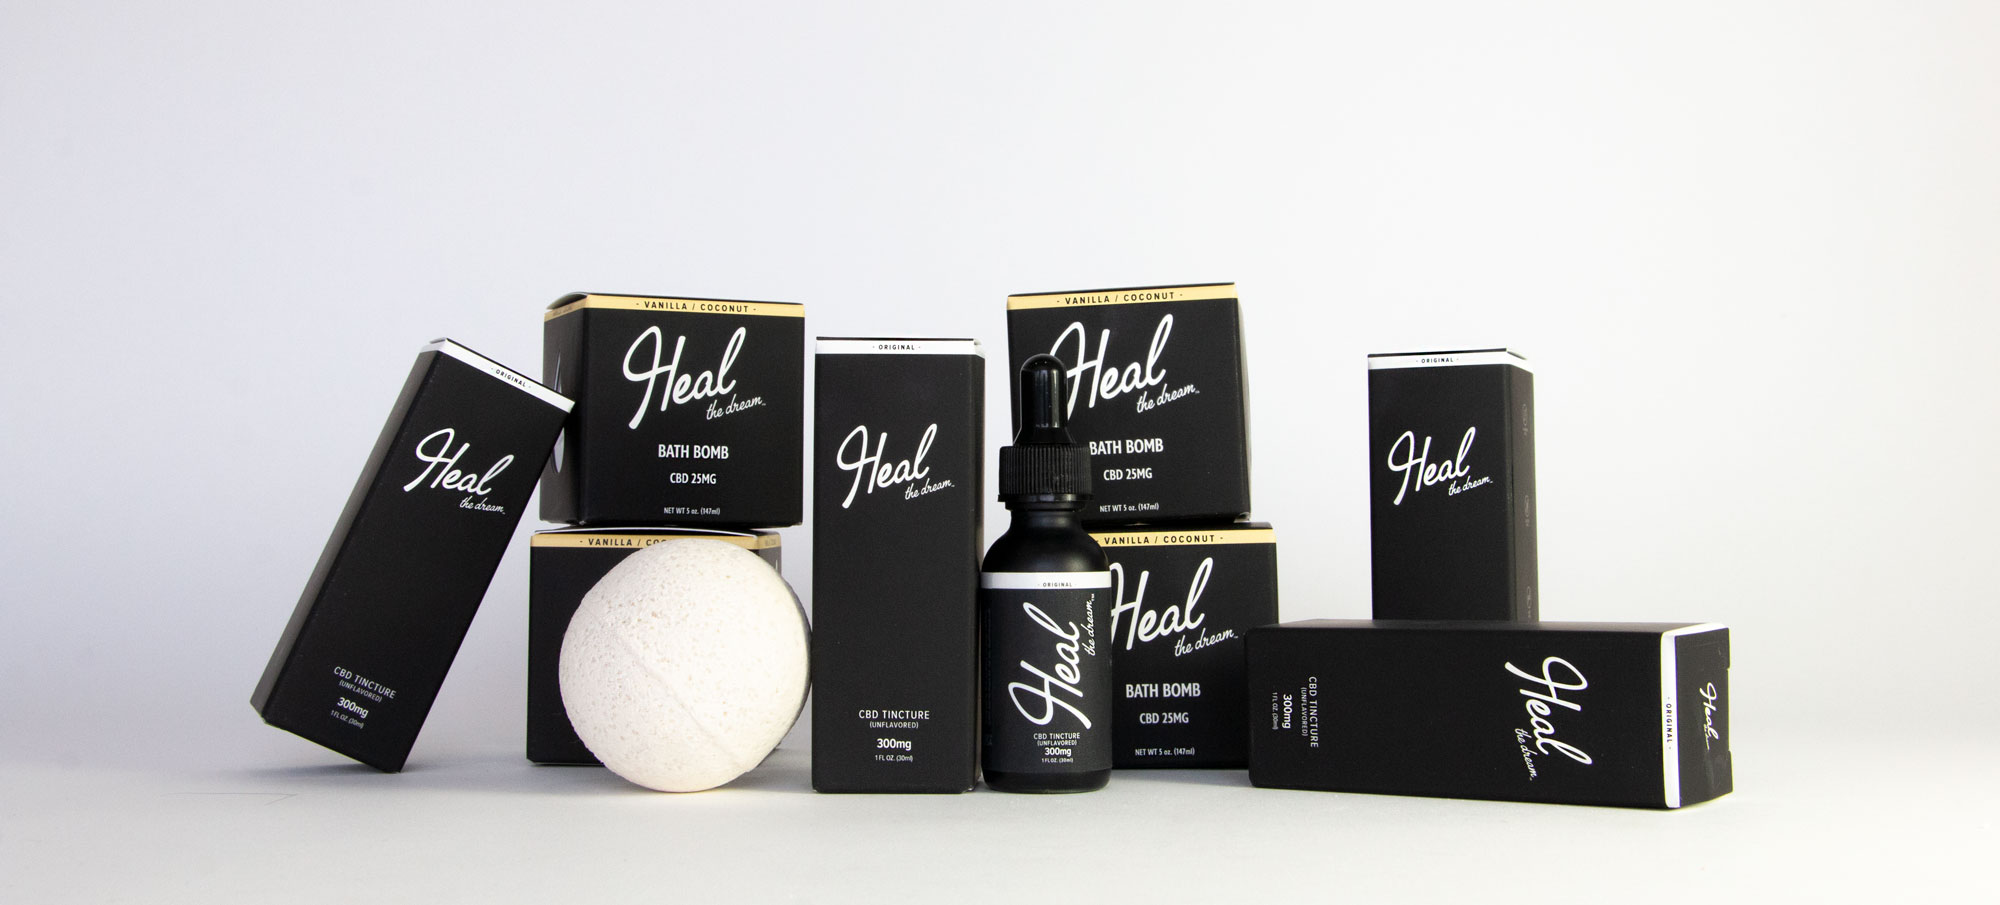 HealtheDream-CBD-Products-Banner.jpg